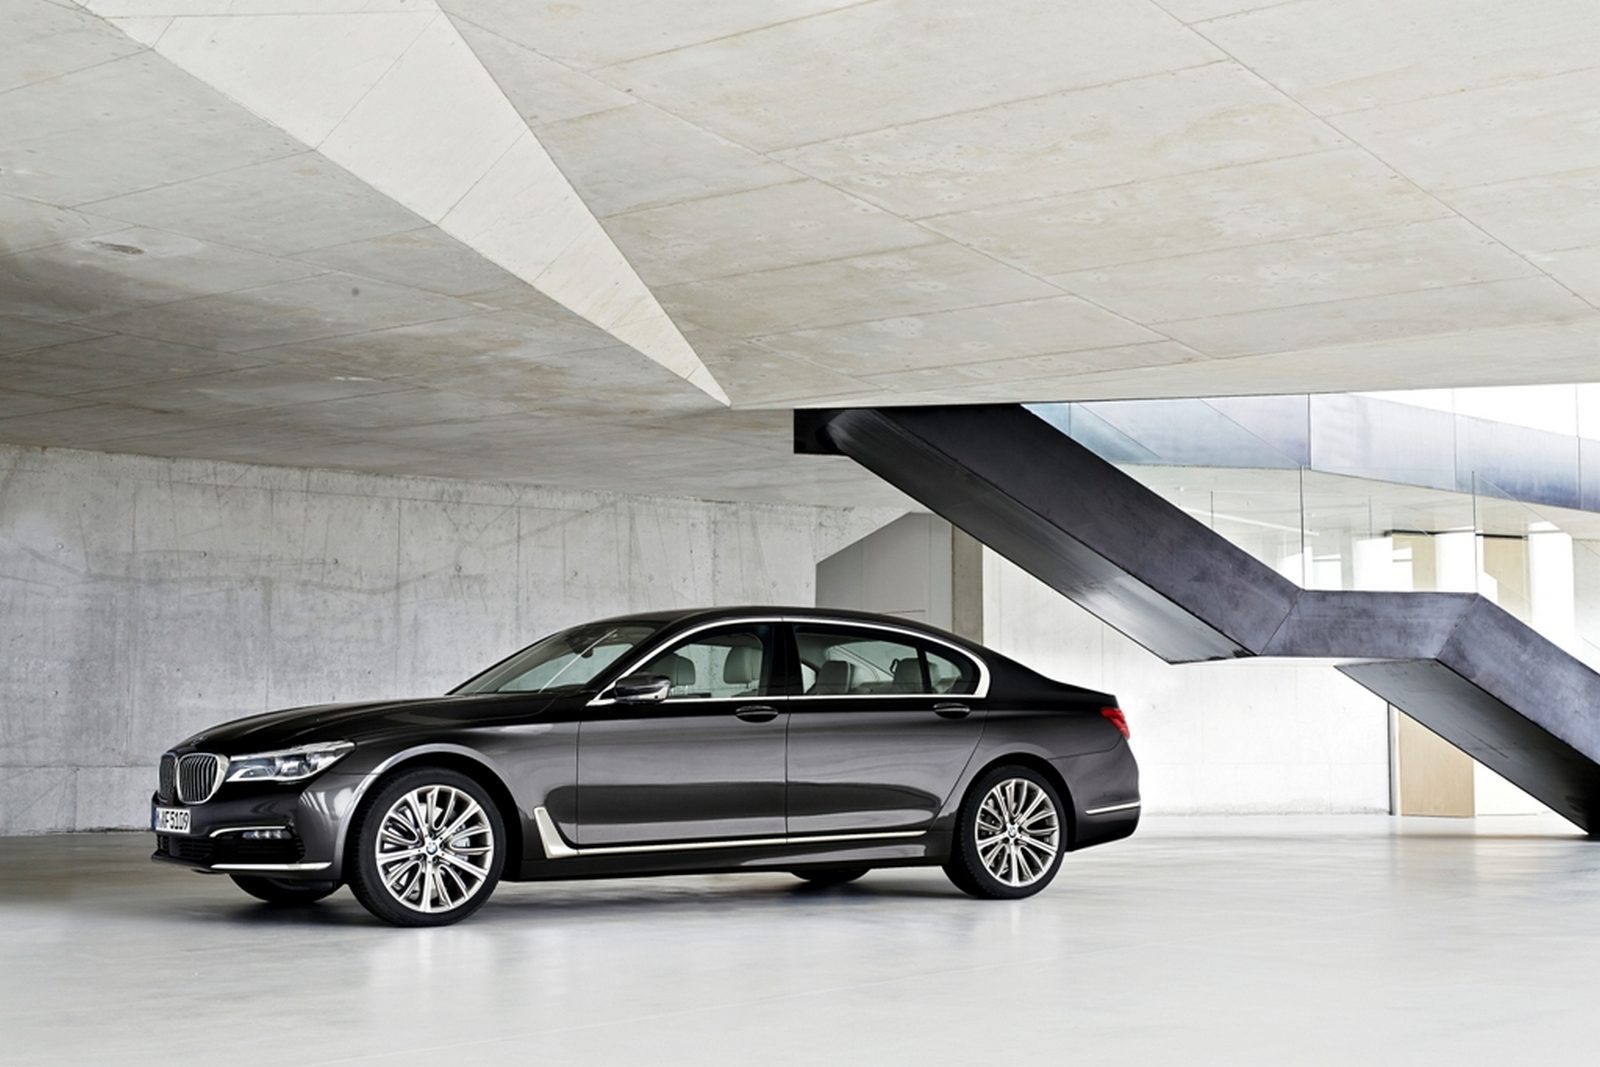 BMW 740Li Pure Excellence